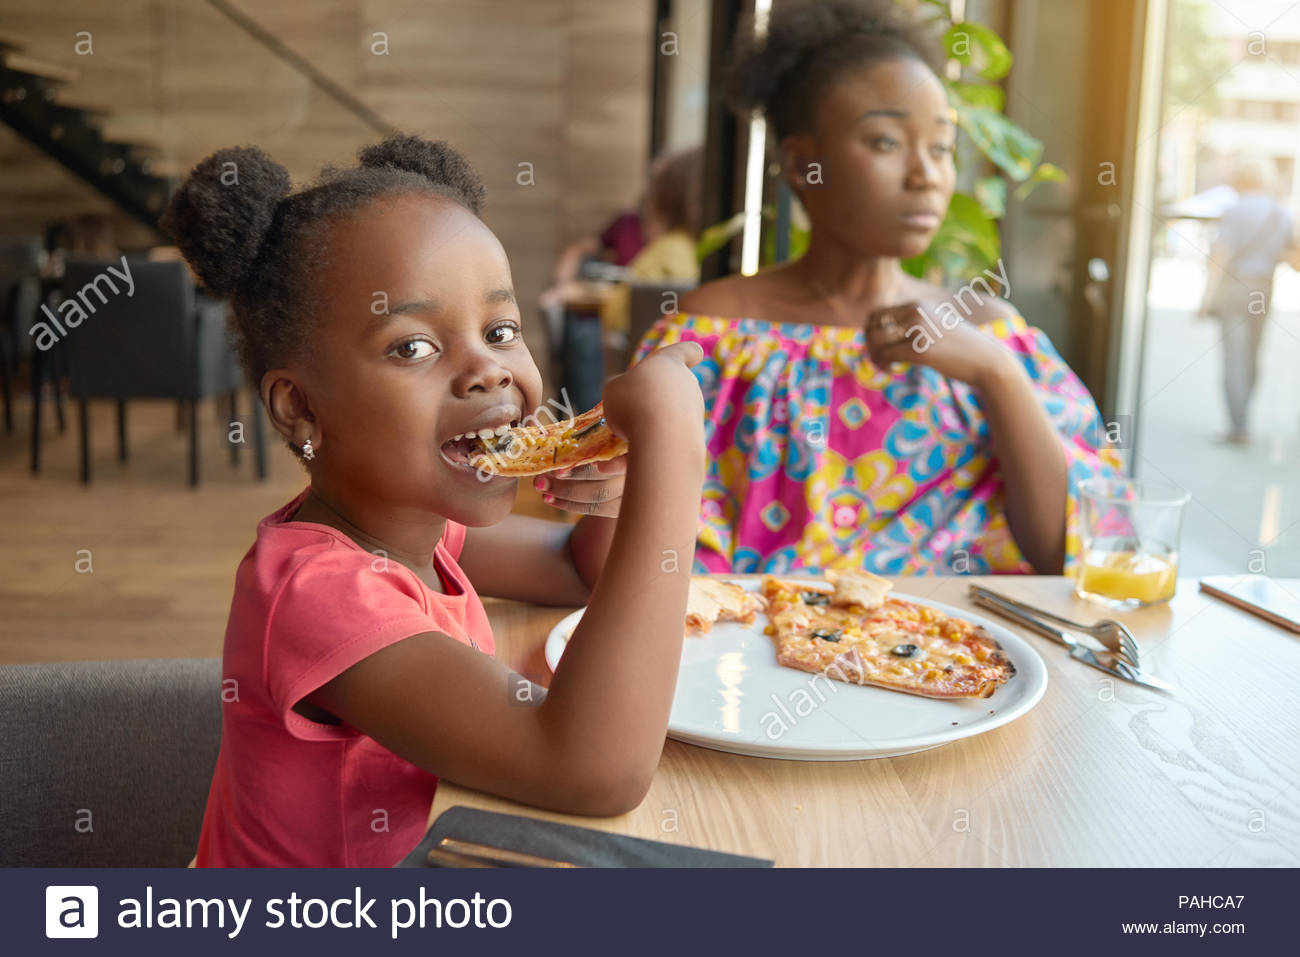 Hungry little girl eating pizza sitting near her mother in cafe. Happy, having good mood, wonderful time together, lovely family. Other clients sitting in cafe's background. Loft design interior. - Stock Image